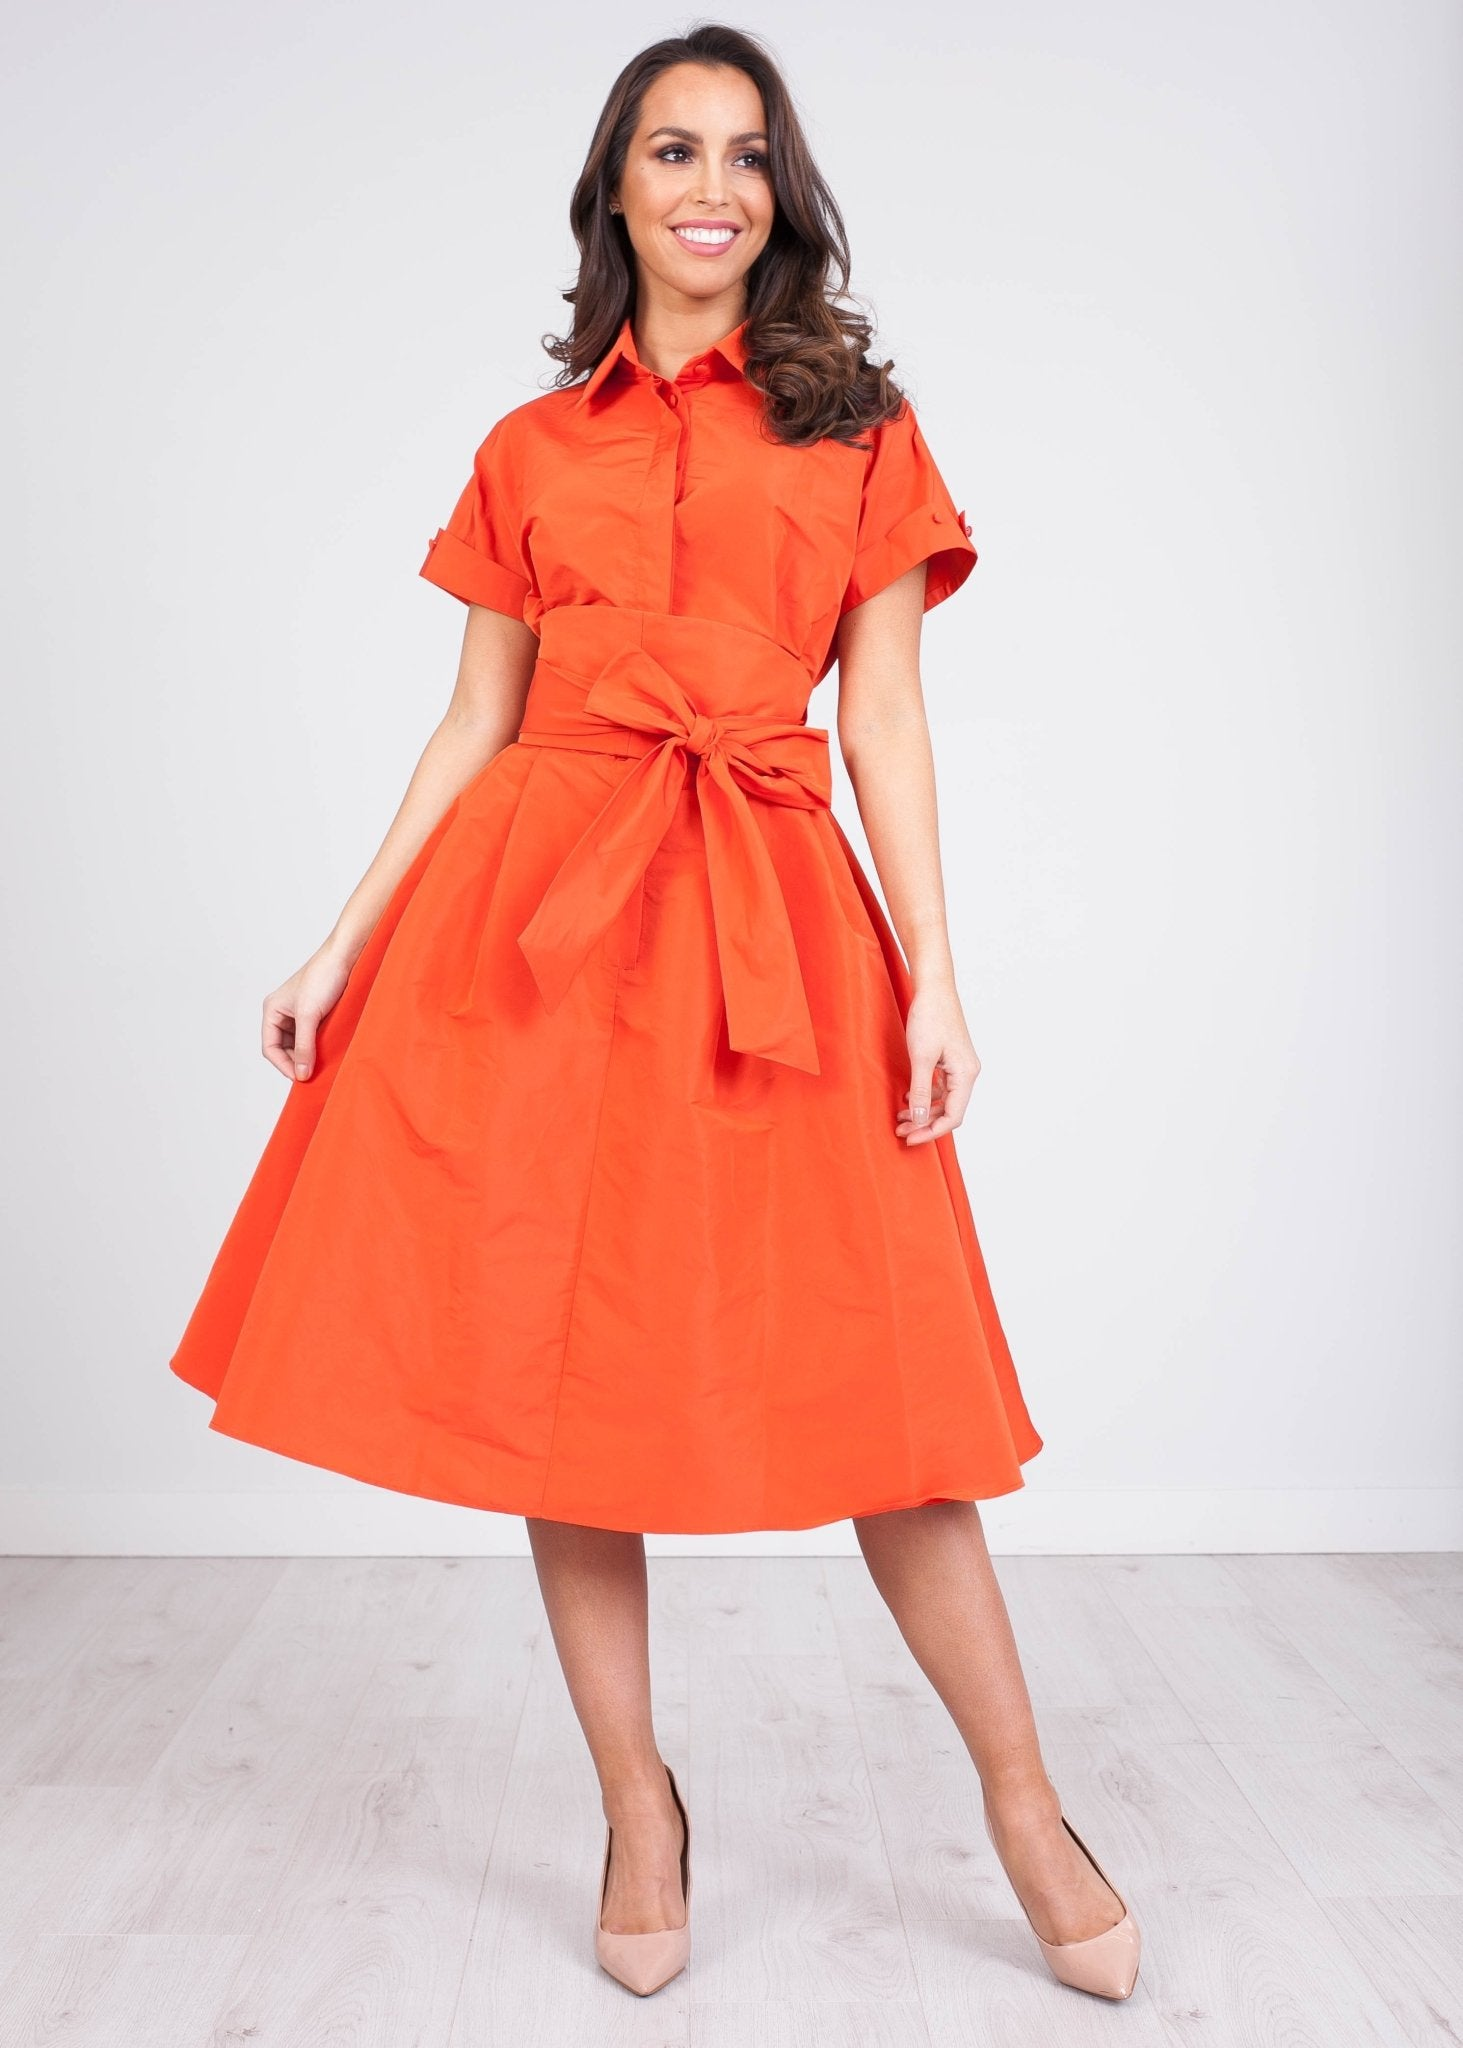 Marissa Orange Dress - The Walk in Wardrobe